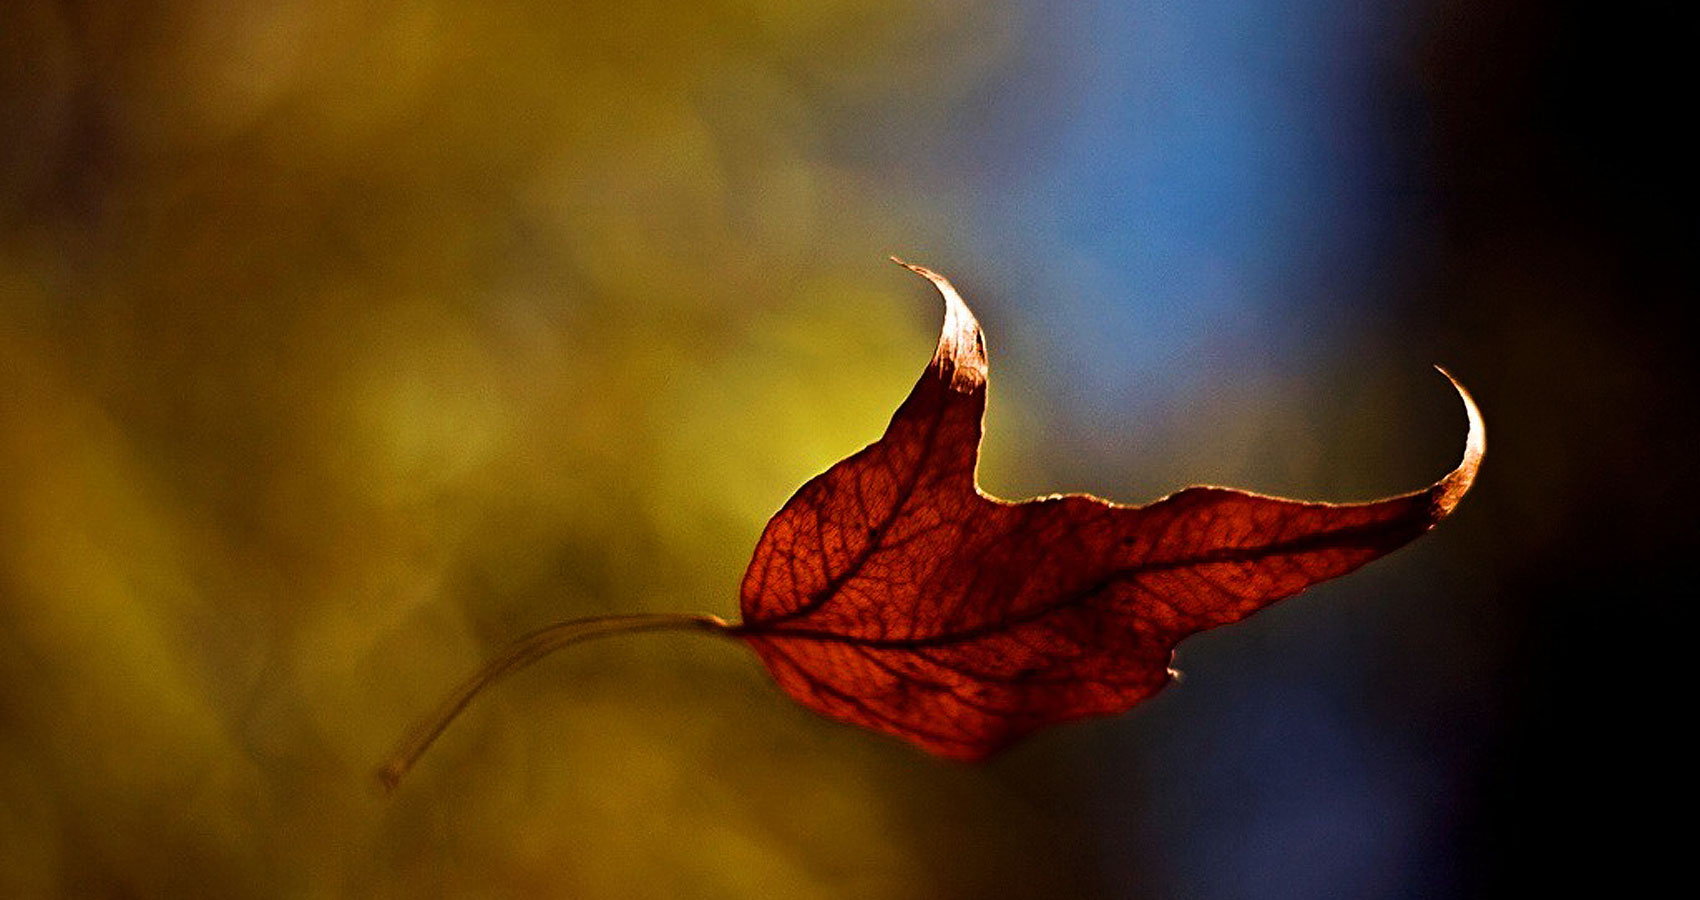 The Last Leaf Falls written by Nicole Cheng at Spillwords.com